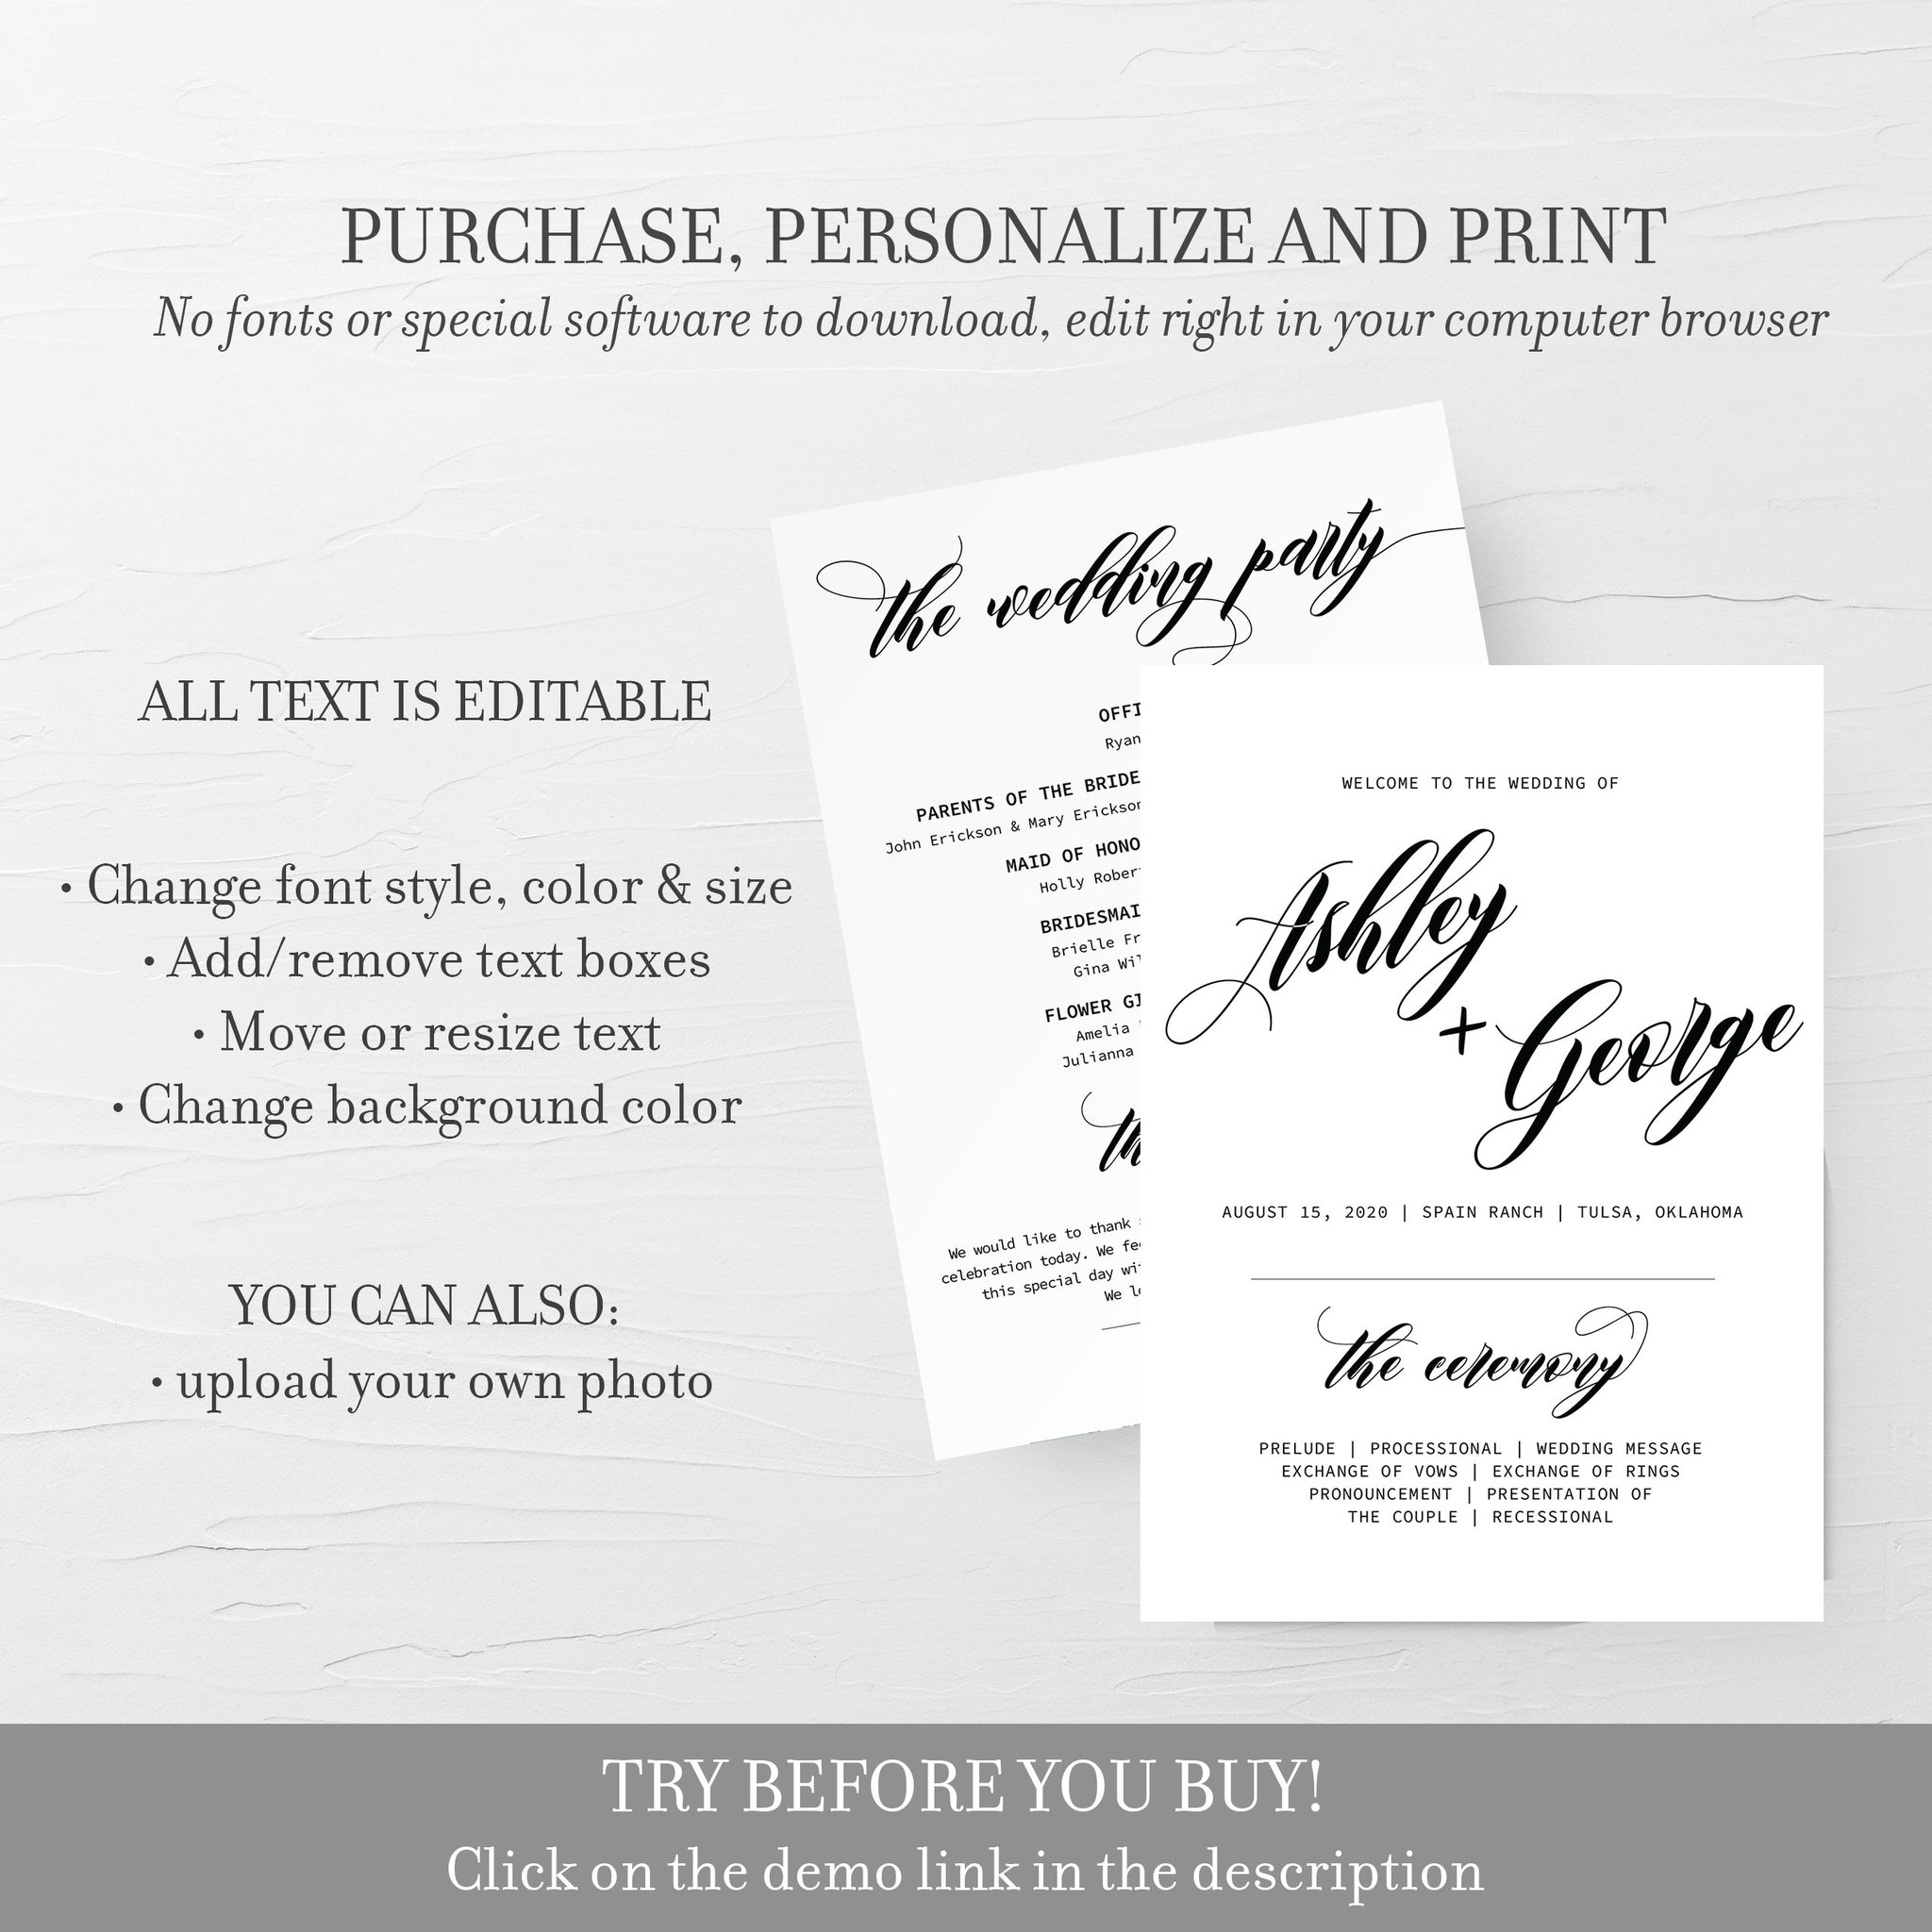 Black Script Wedding Program Template, Classic Wedding Ceremony Programs, Editable Wedding Program, 5x7 DIGITAL DOWNLOAD - SFB100 - @PlumPolkaDot